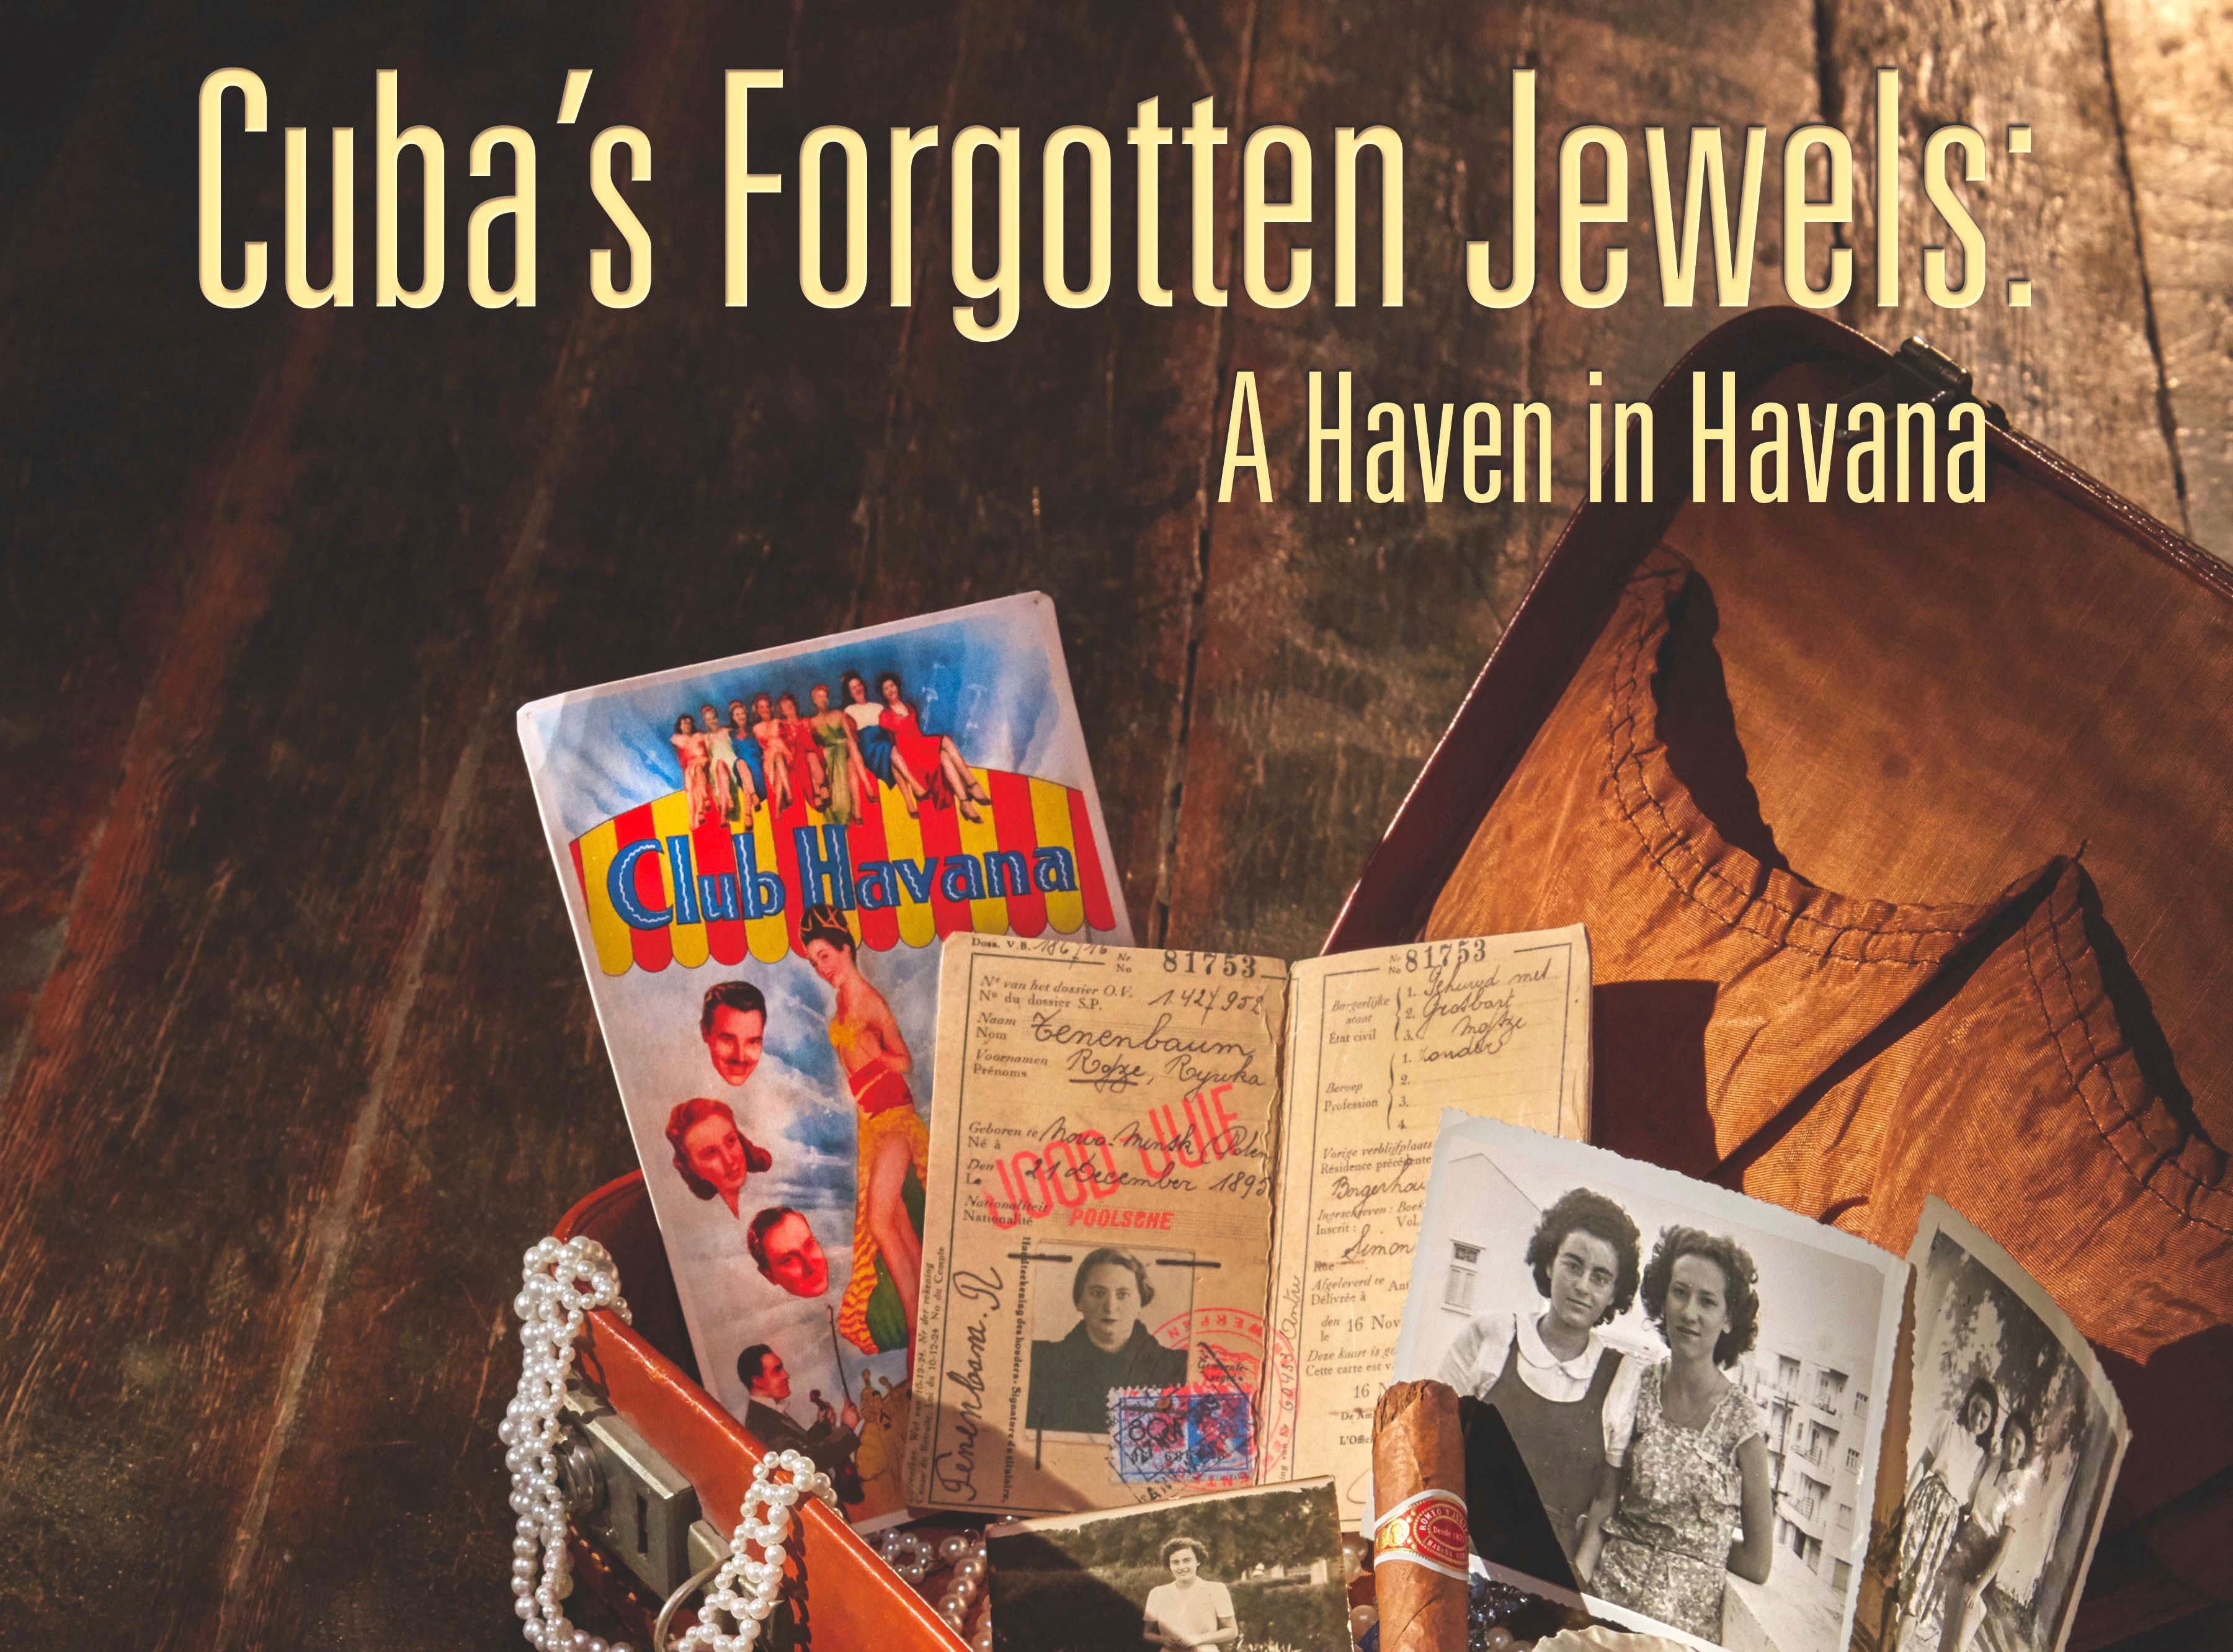 CubasForgottenJewels_Poster_Courtesy_National Center for Jewish Film (1)